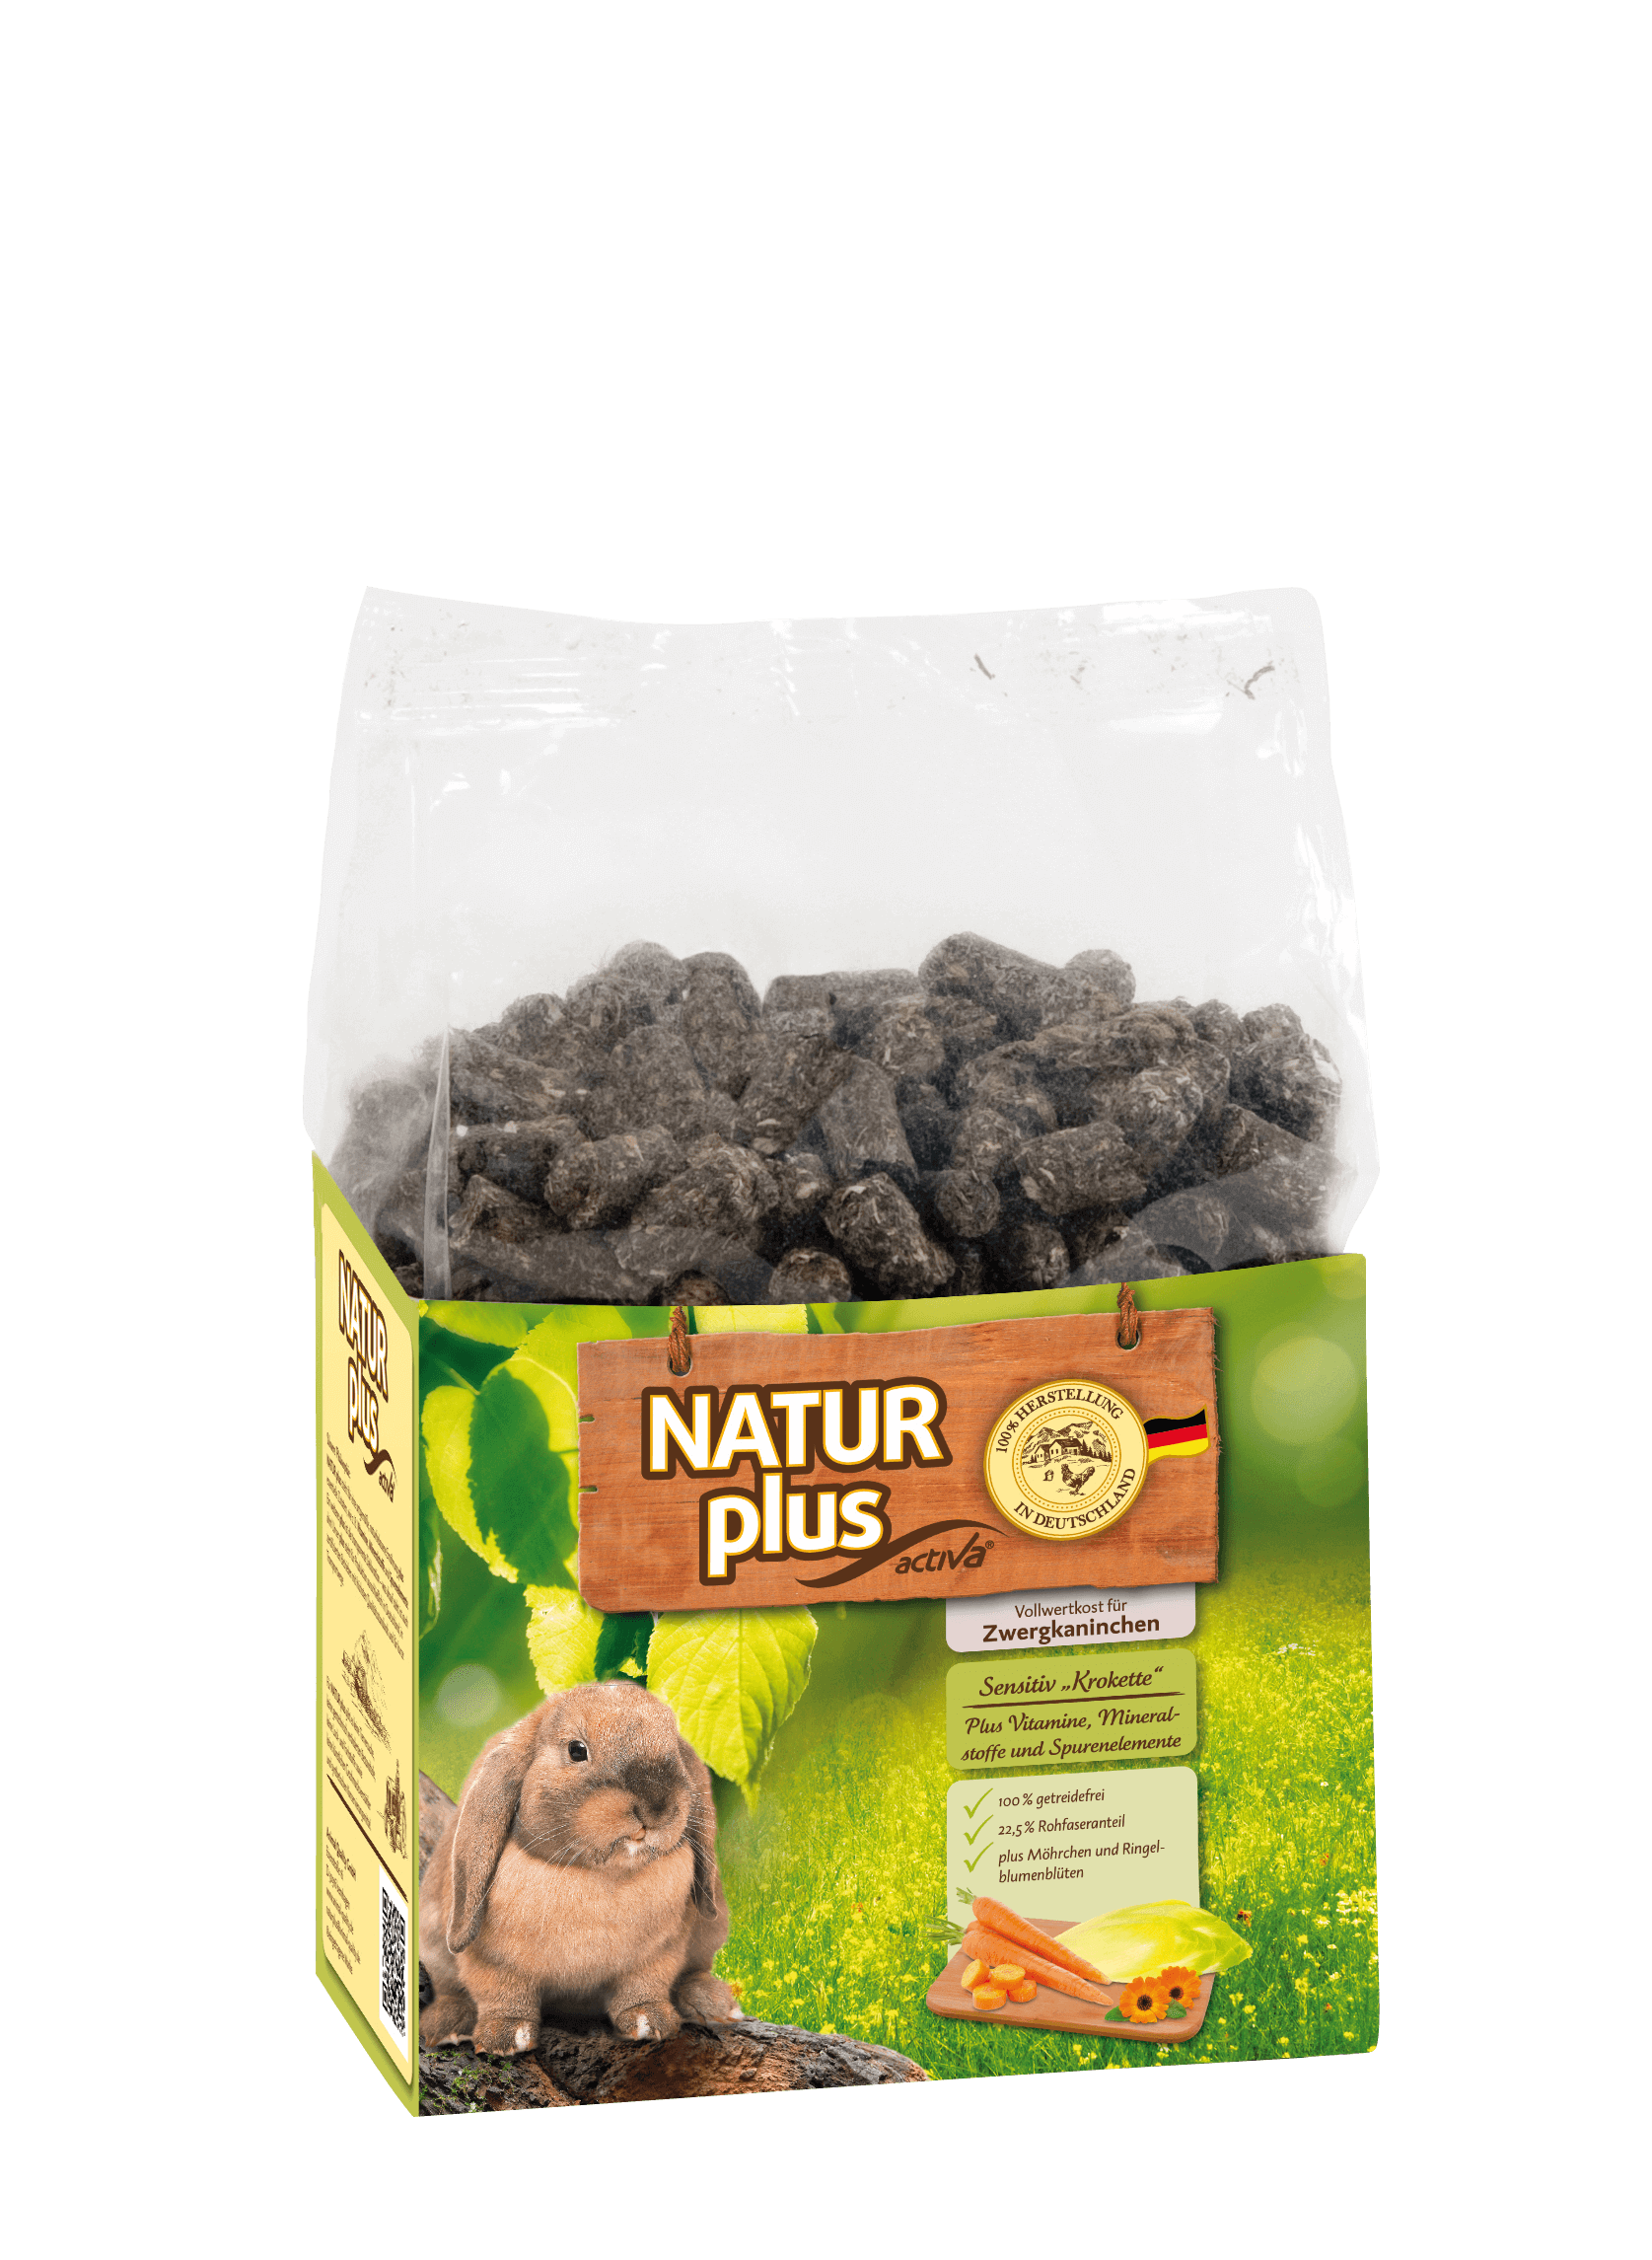 Natur plus ZK Sensitiv Krokette